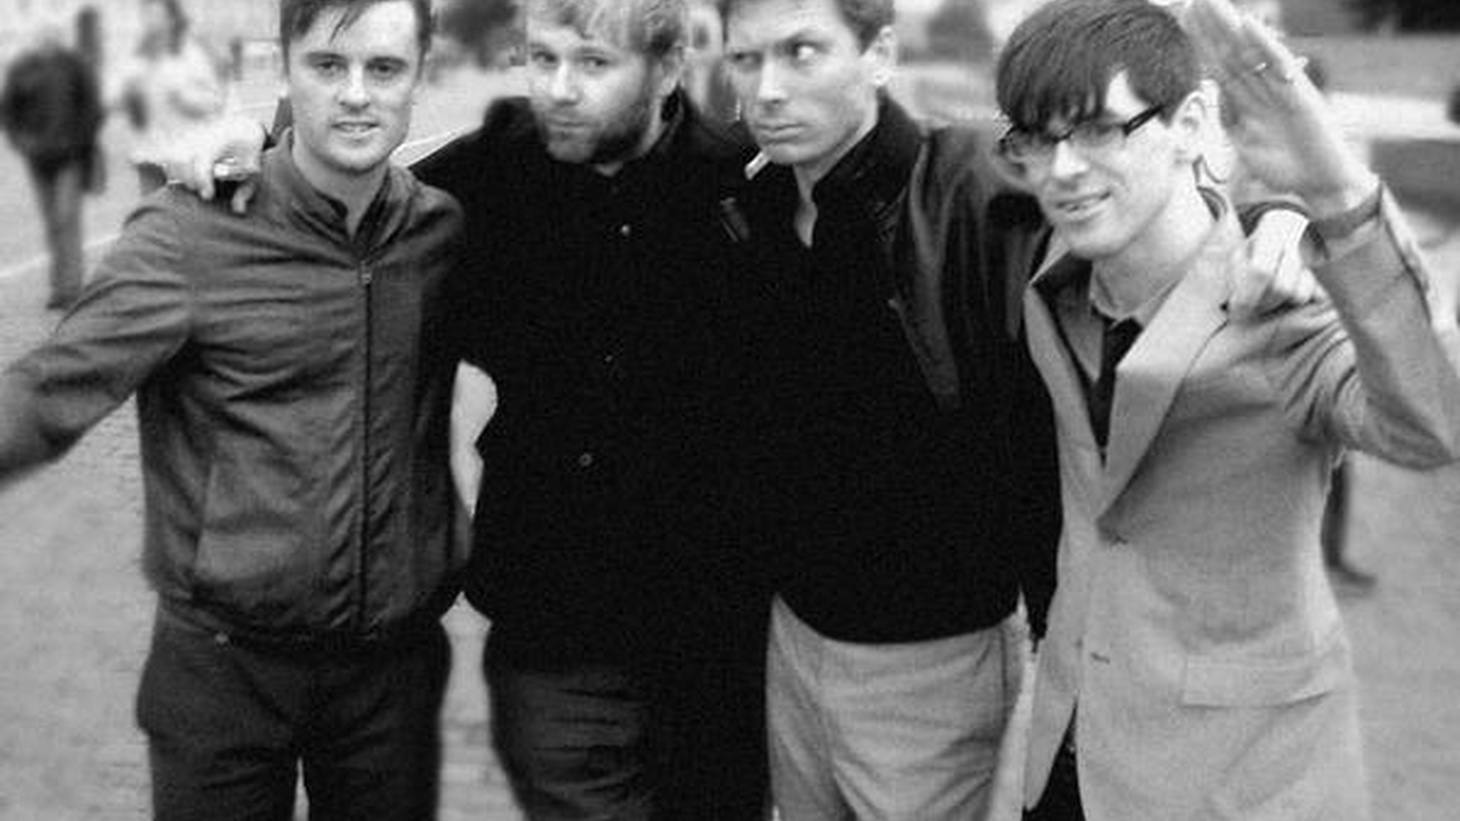 Franz Ferdinand are set to release a much anticipated new album at the end of August and will return to the radio station that gave them their first break to play their new songs live. Catch the Scottish four piece on Morning Becomes Eclectic at 11:15am.